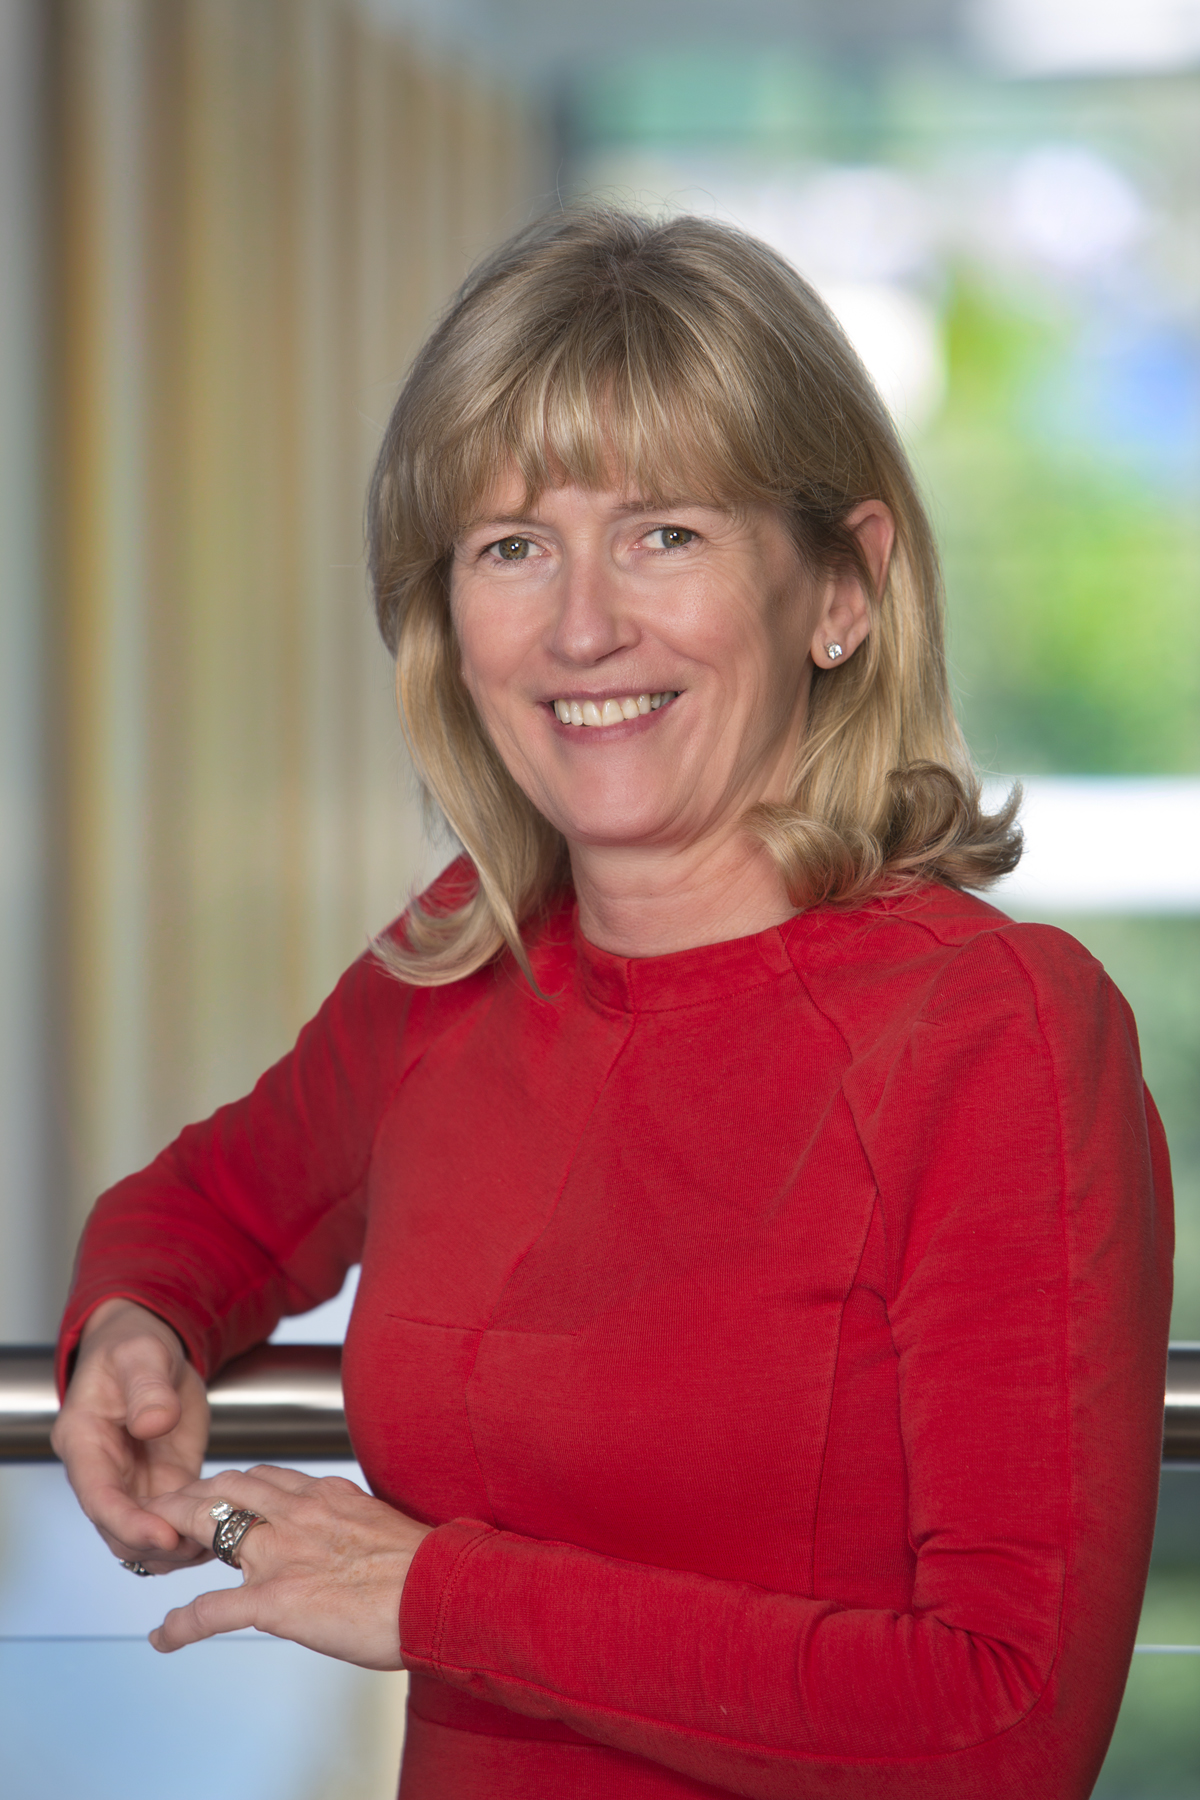 Professor Mary Horgan elected President of Royal College of Physicians Ireland